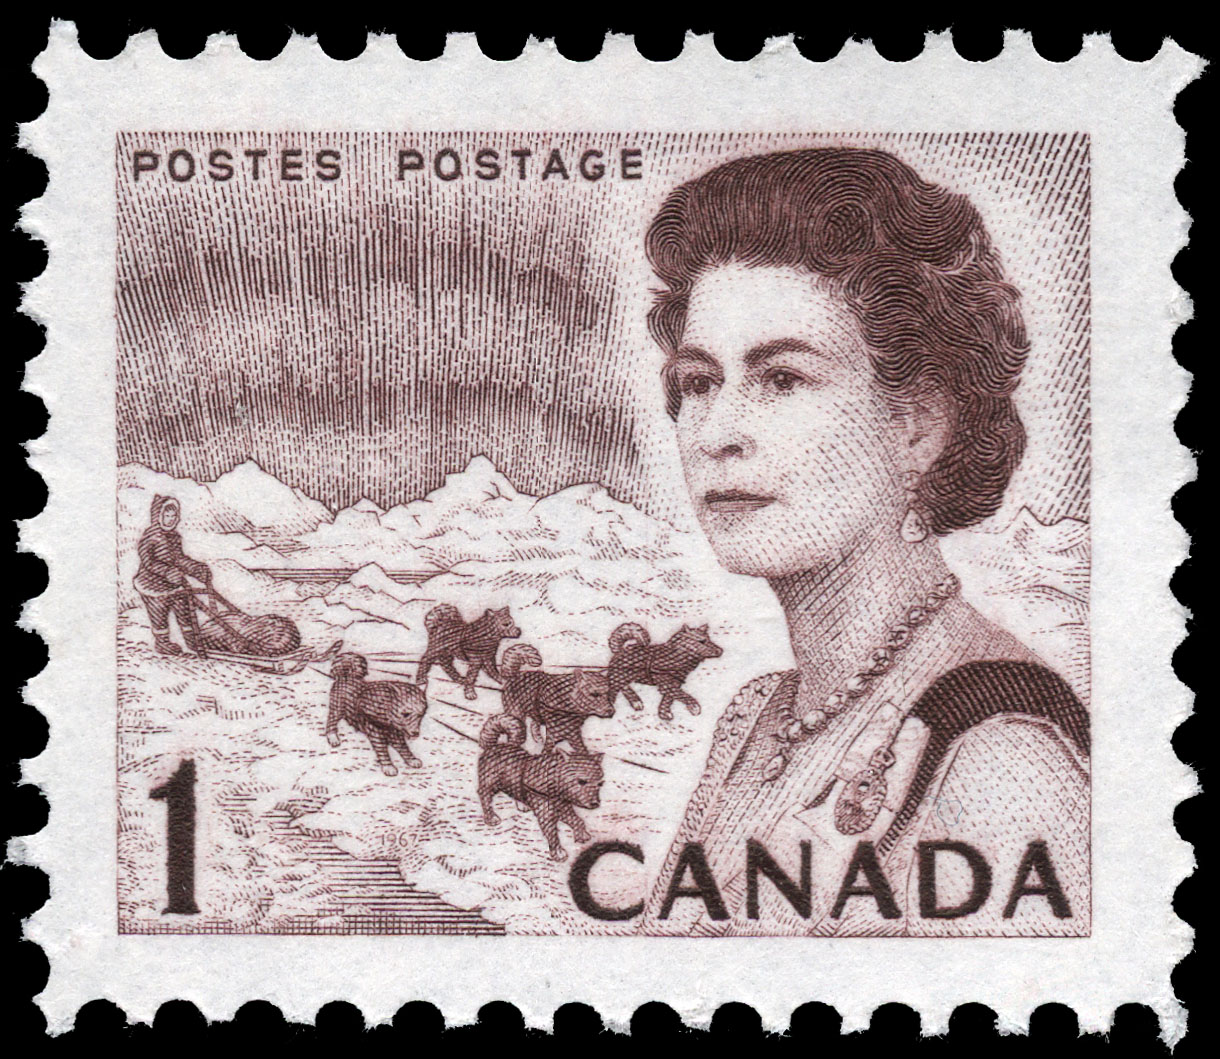 Queen Elizabeth II, Northern Regions Canada Postage Stamp | Centennial Issue